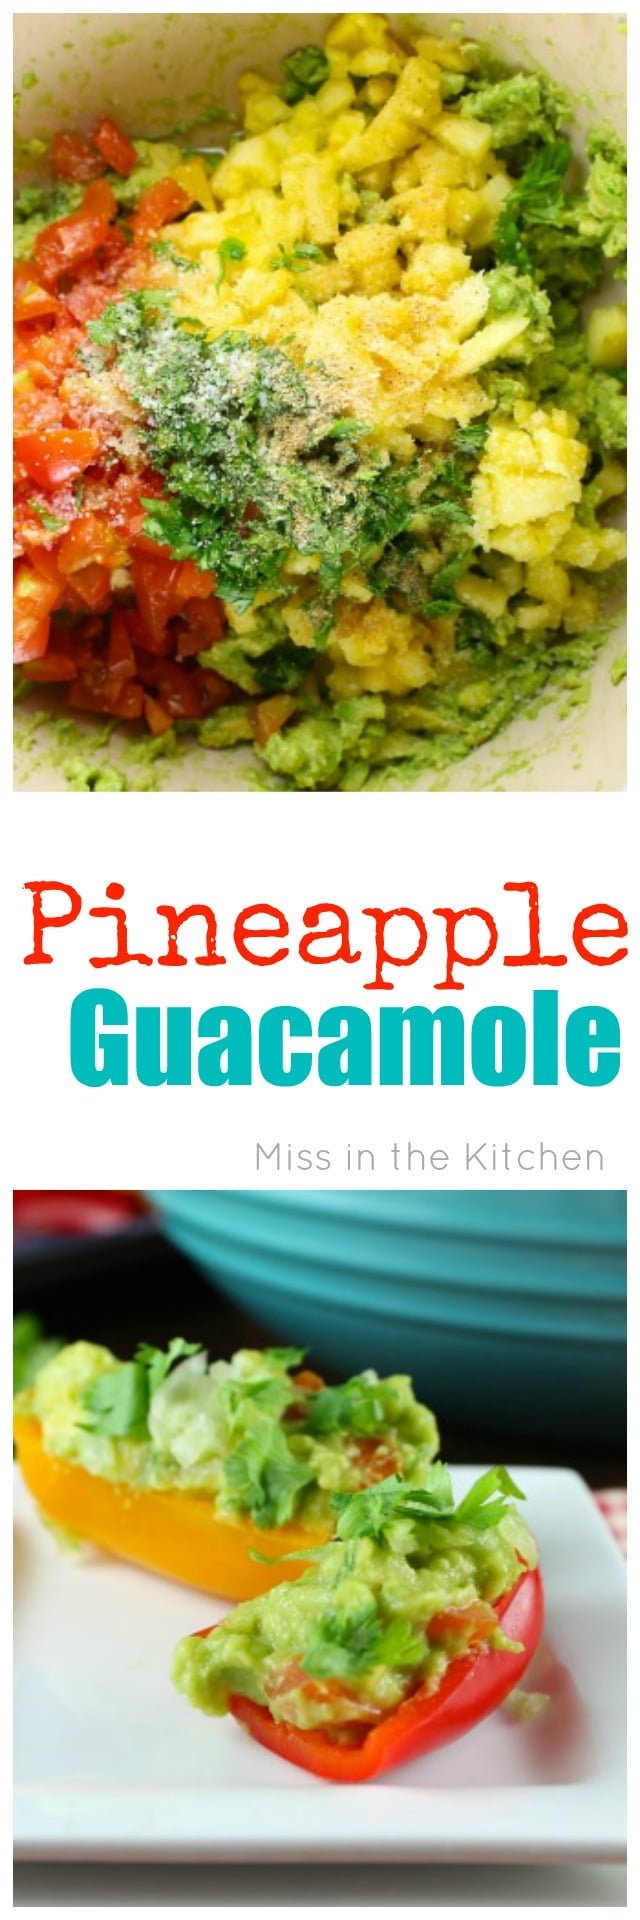 Pineapple Guacamole Recipe for a healthy and delicious snack that the whole family will love. Recipe found at MissintheKitchen.com